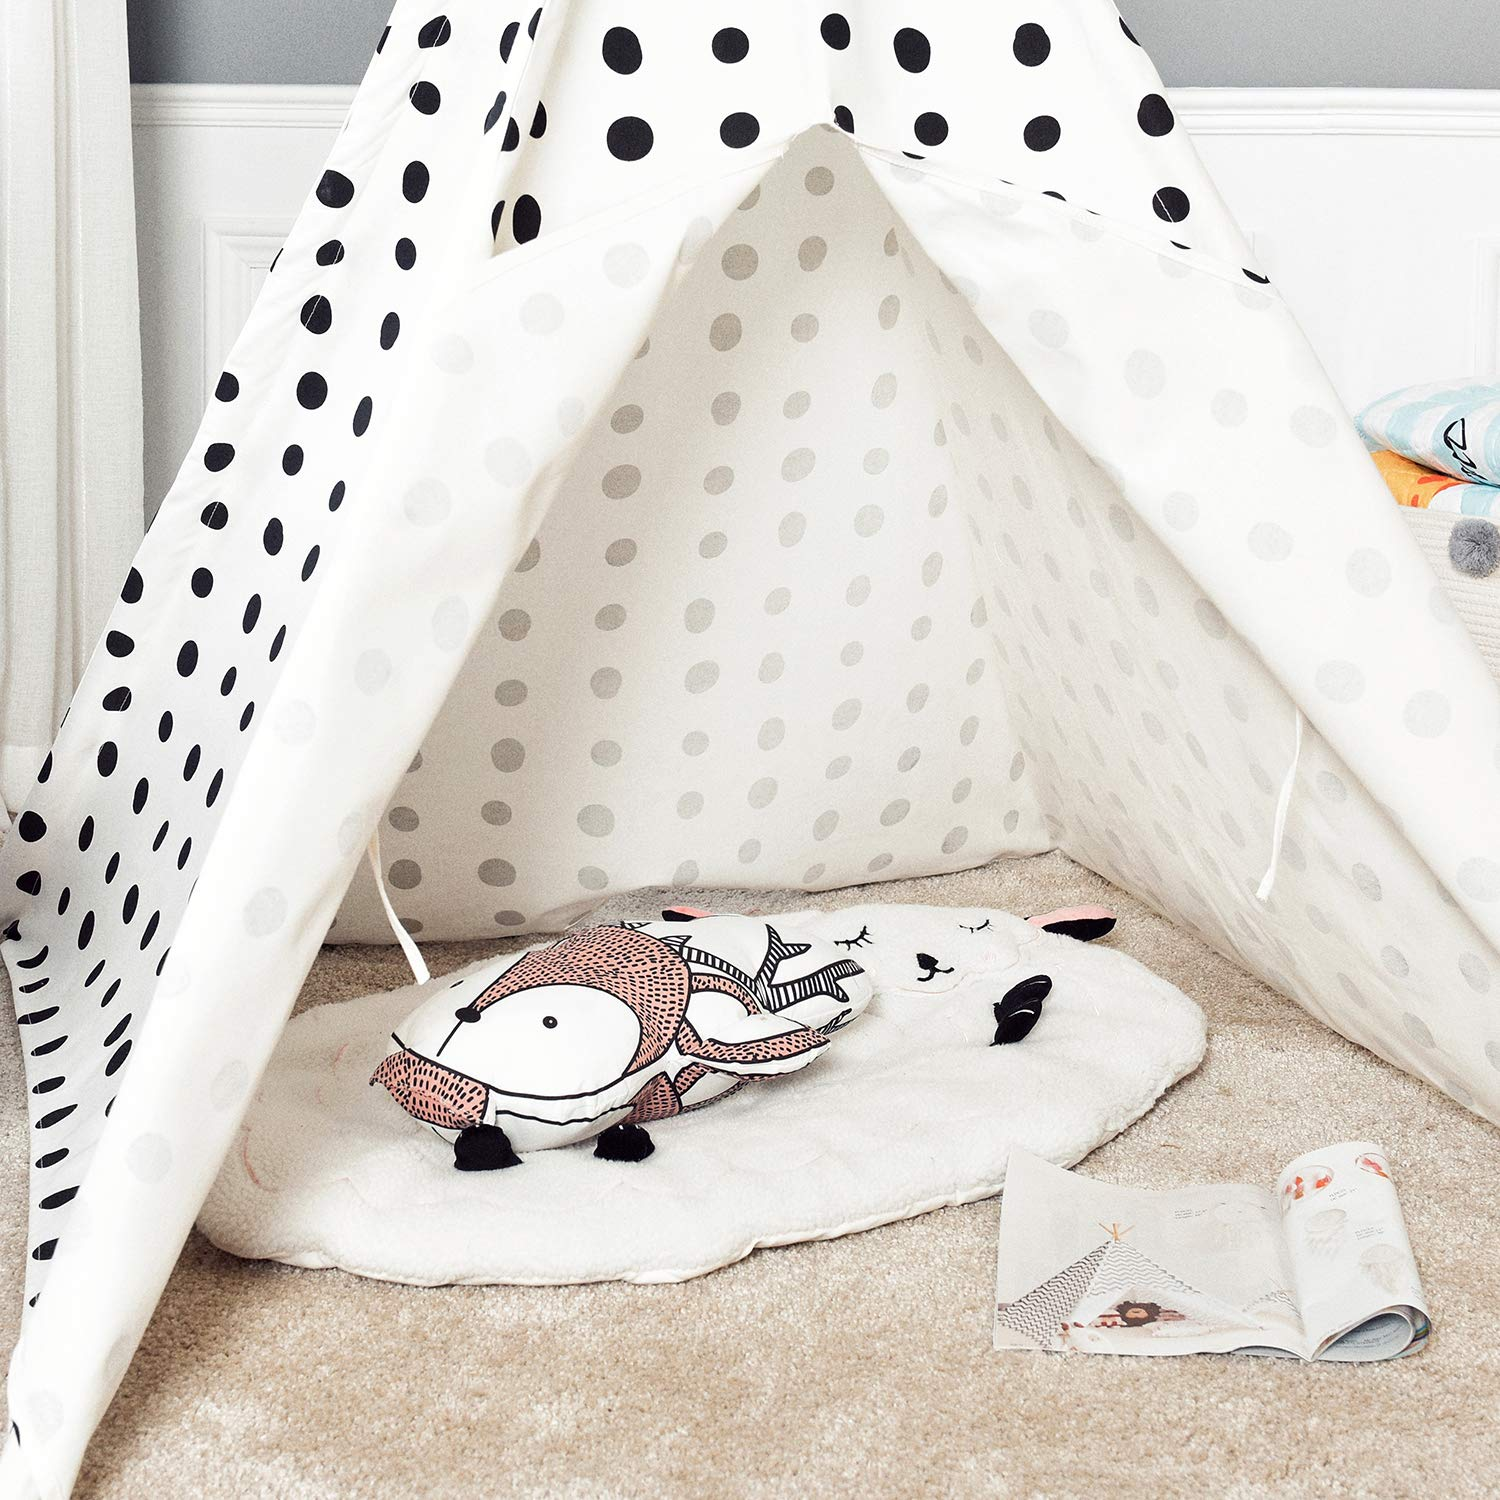 Asweets Teepee Tent for Kids Children Play Tent with Carry Case for Indoor Outdoor Blue Top Black Point